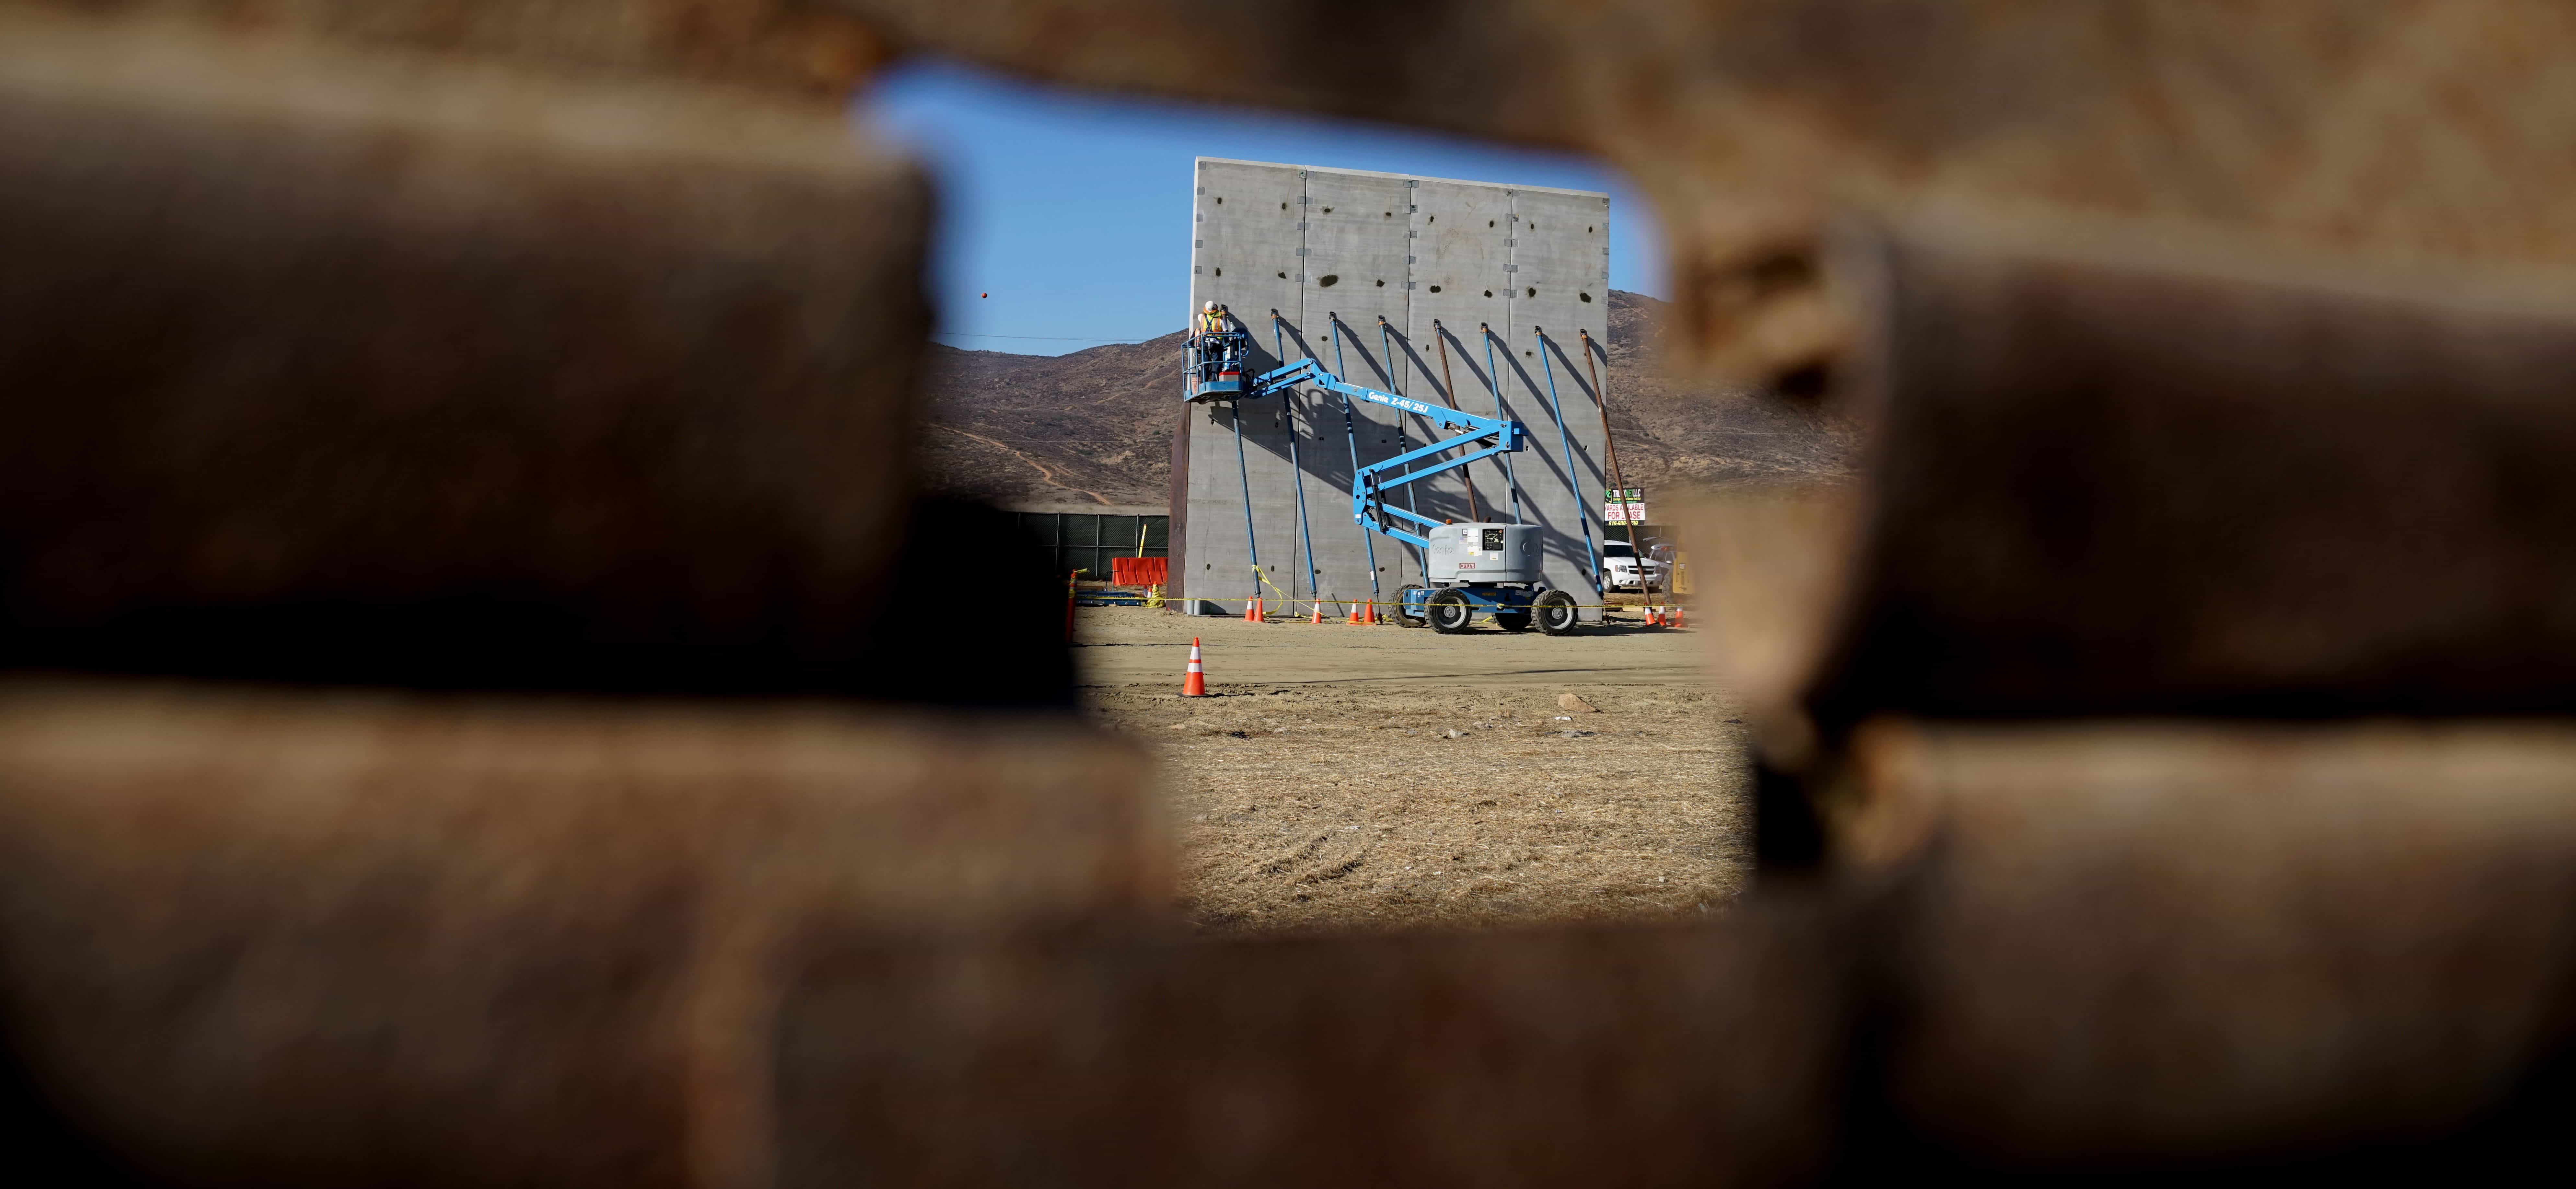 Prototypes of possible border walls between the US and Mexico under construction, October 2017 (Photo: Sandy Huffaker/Getty Images)